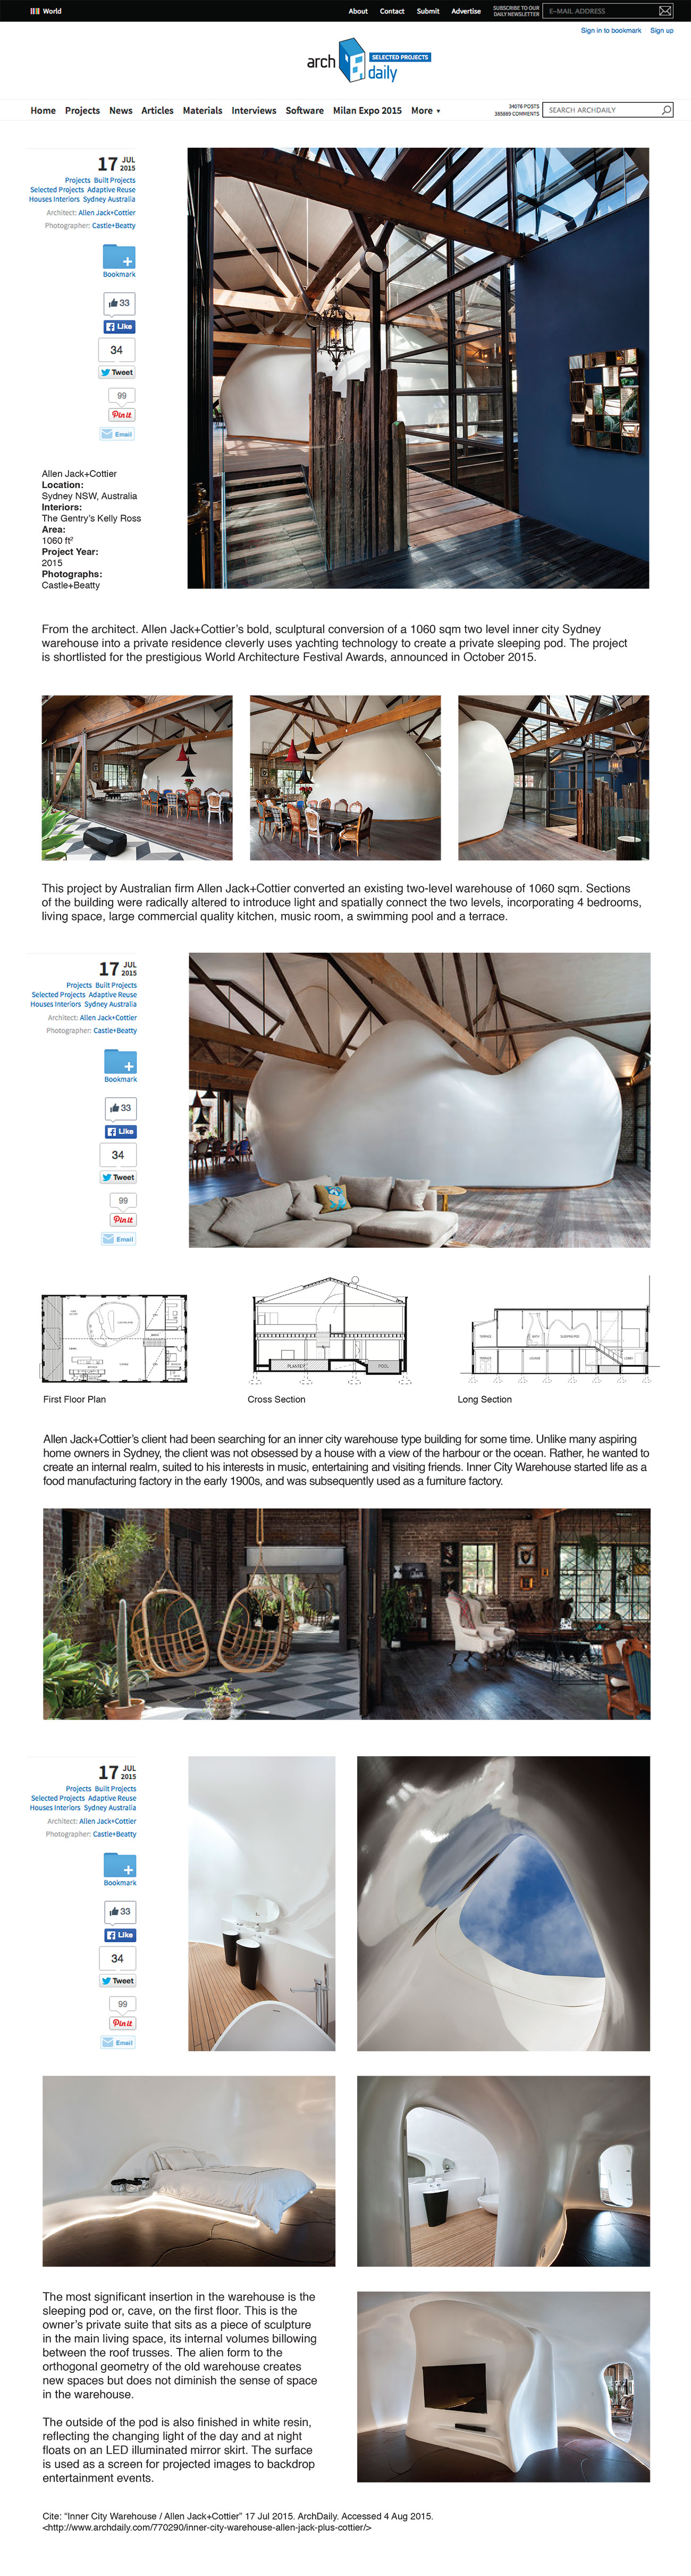 ArchDaily-Full